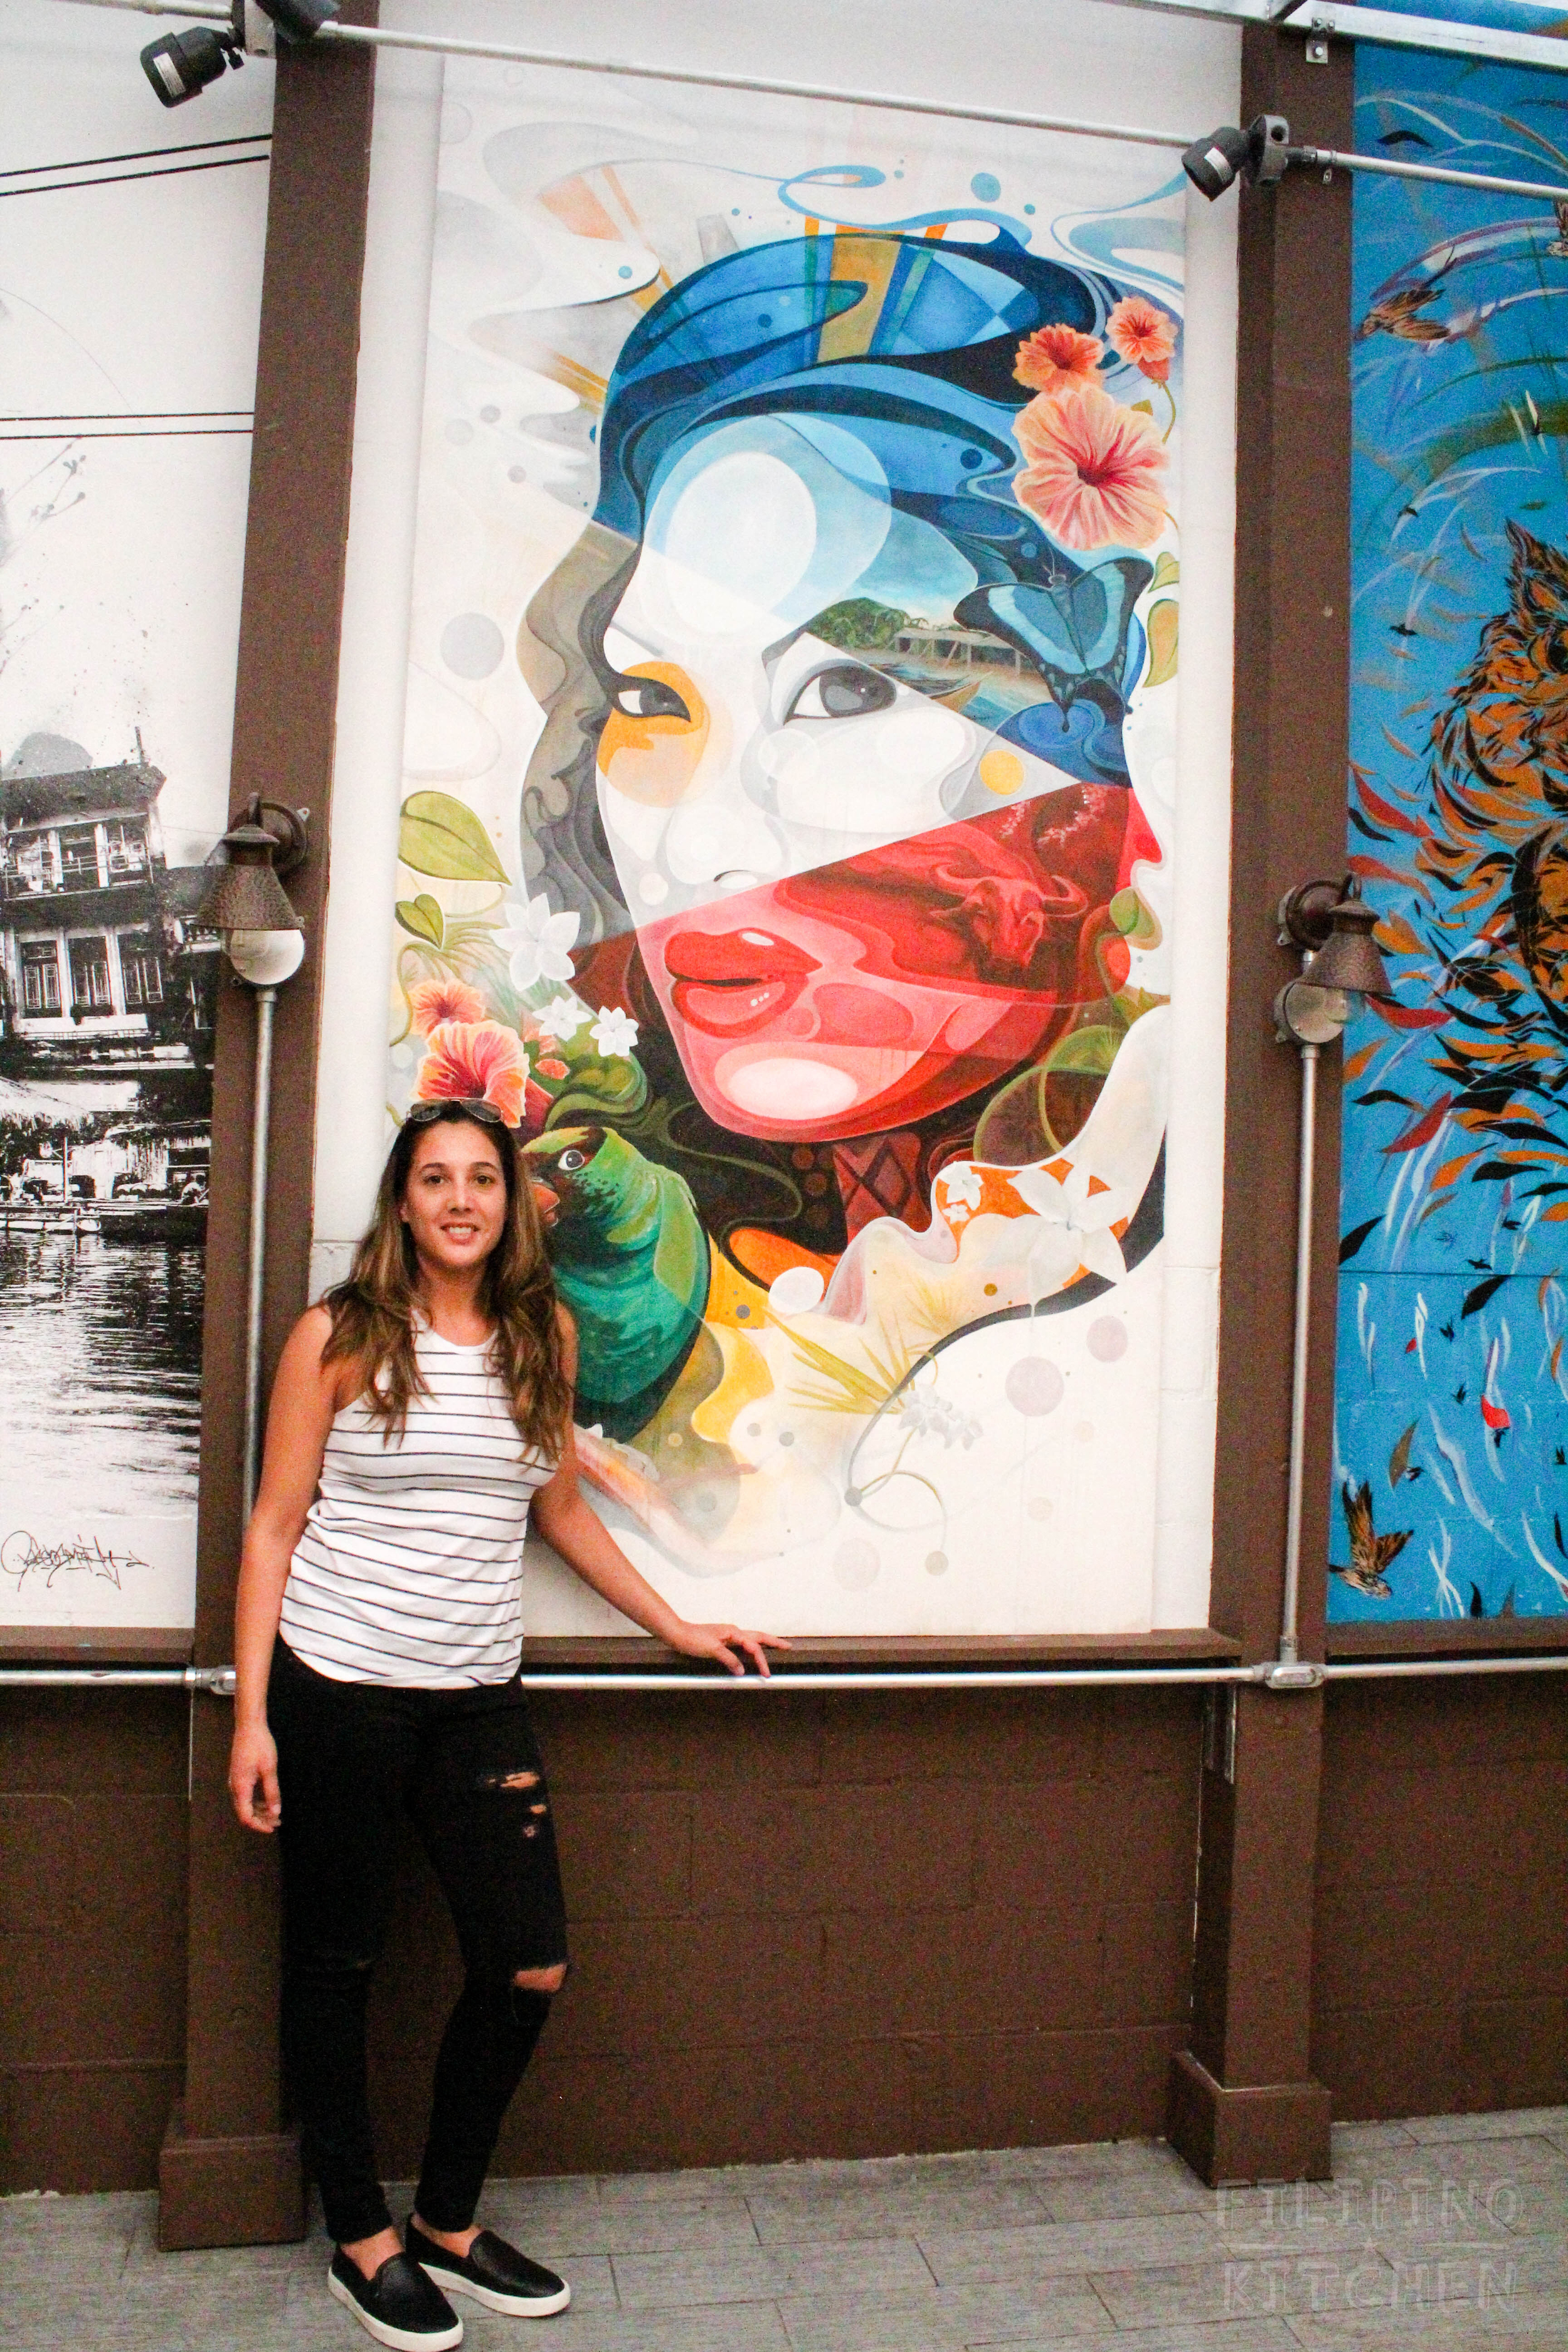 Chef Leah Cohen on the enclosed patio at her New York City restaurant, Pig & Khao. Mural by  BK .